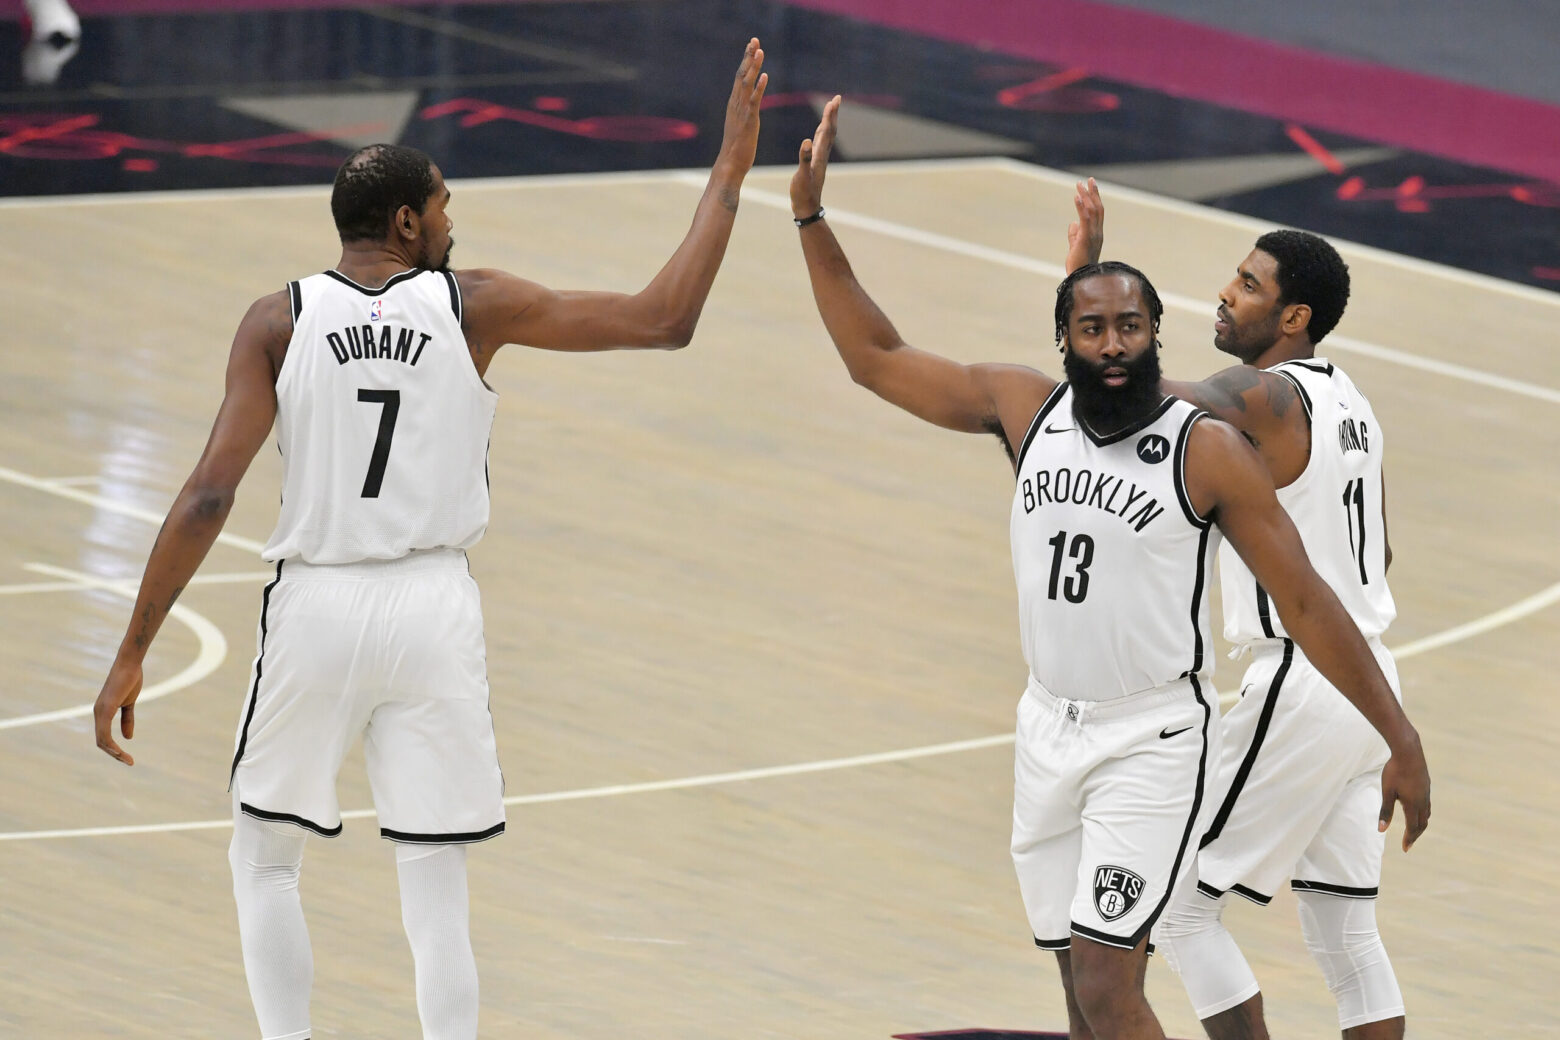 CLEVELAND, OHIO - JANUARY 20: Kevin Durant #7 James Harden #13 and Kyrie Irving #11 of the Brooklyn Nets celebrate during the first quarter against the Cleveland Cavaliers at Rocket Mortgage Fieldhouse on January 20, 2021 in Cleveland, Ohio